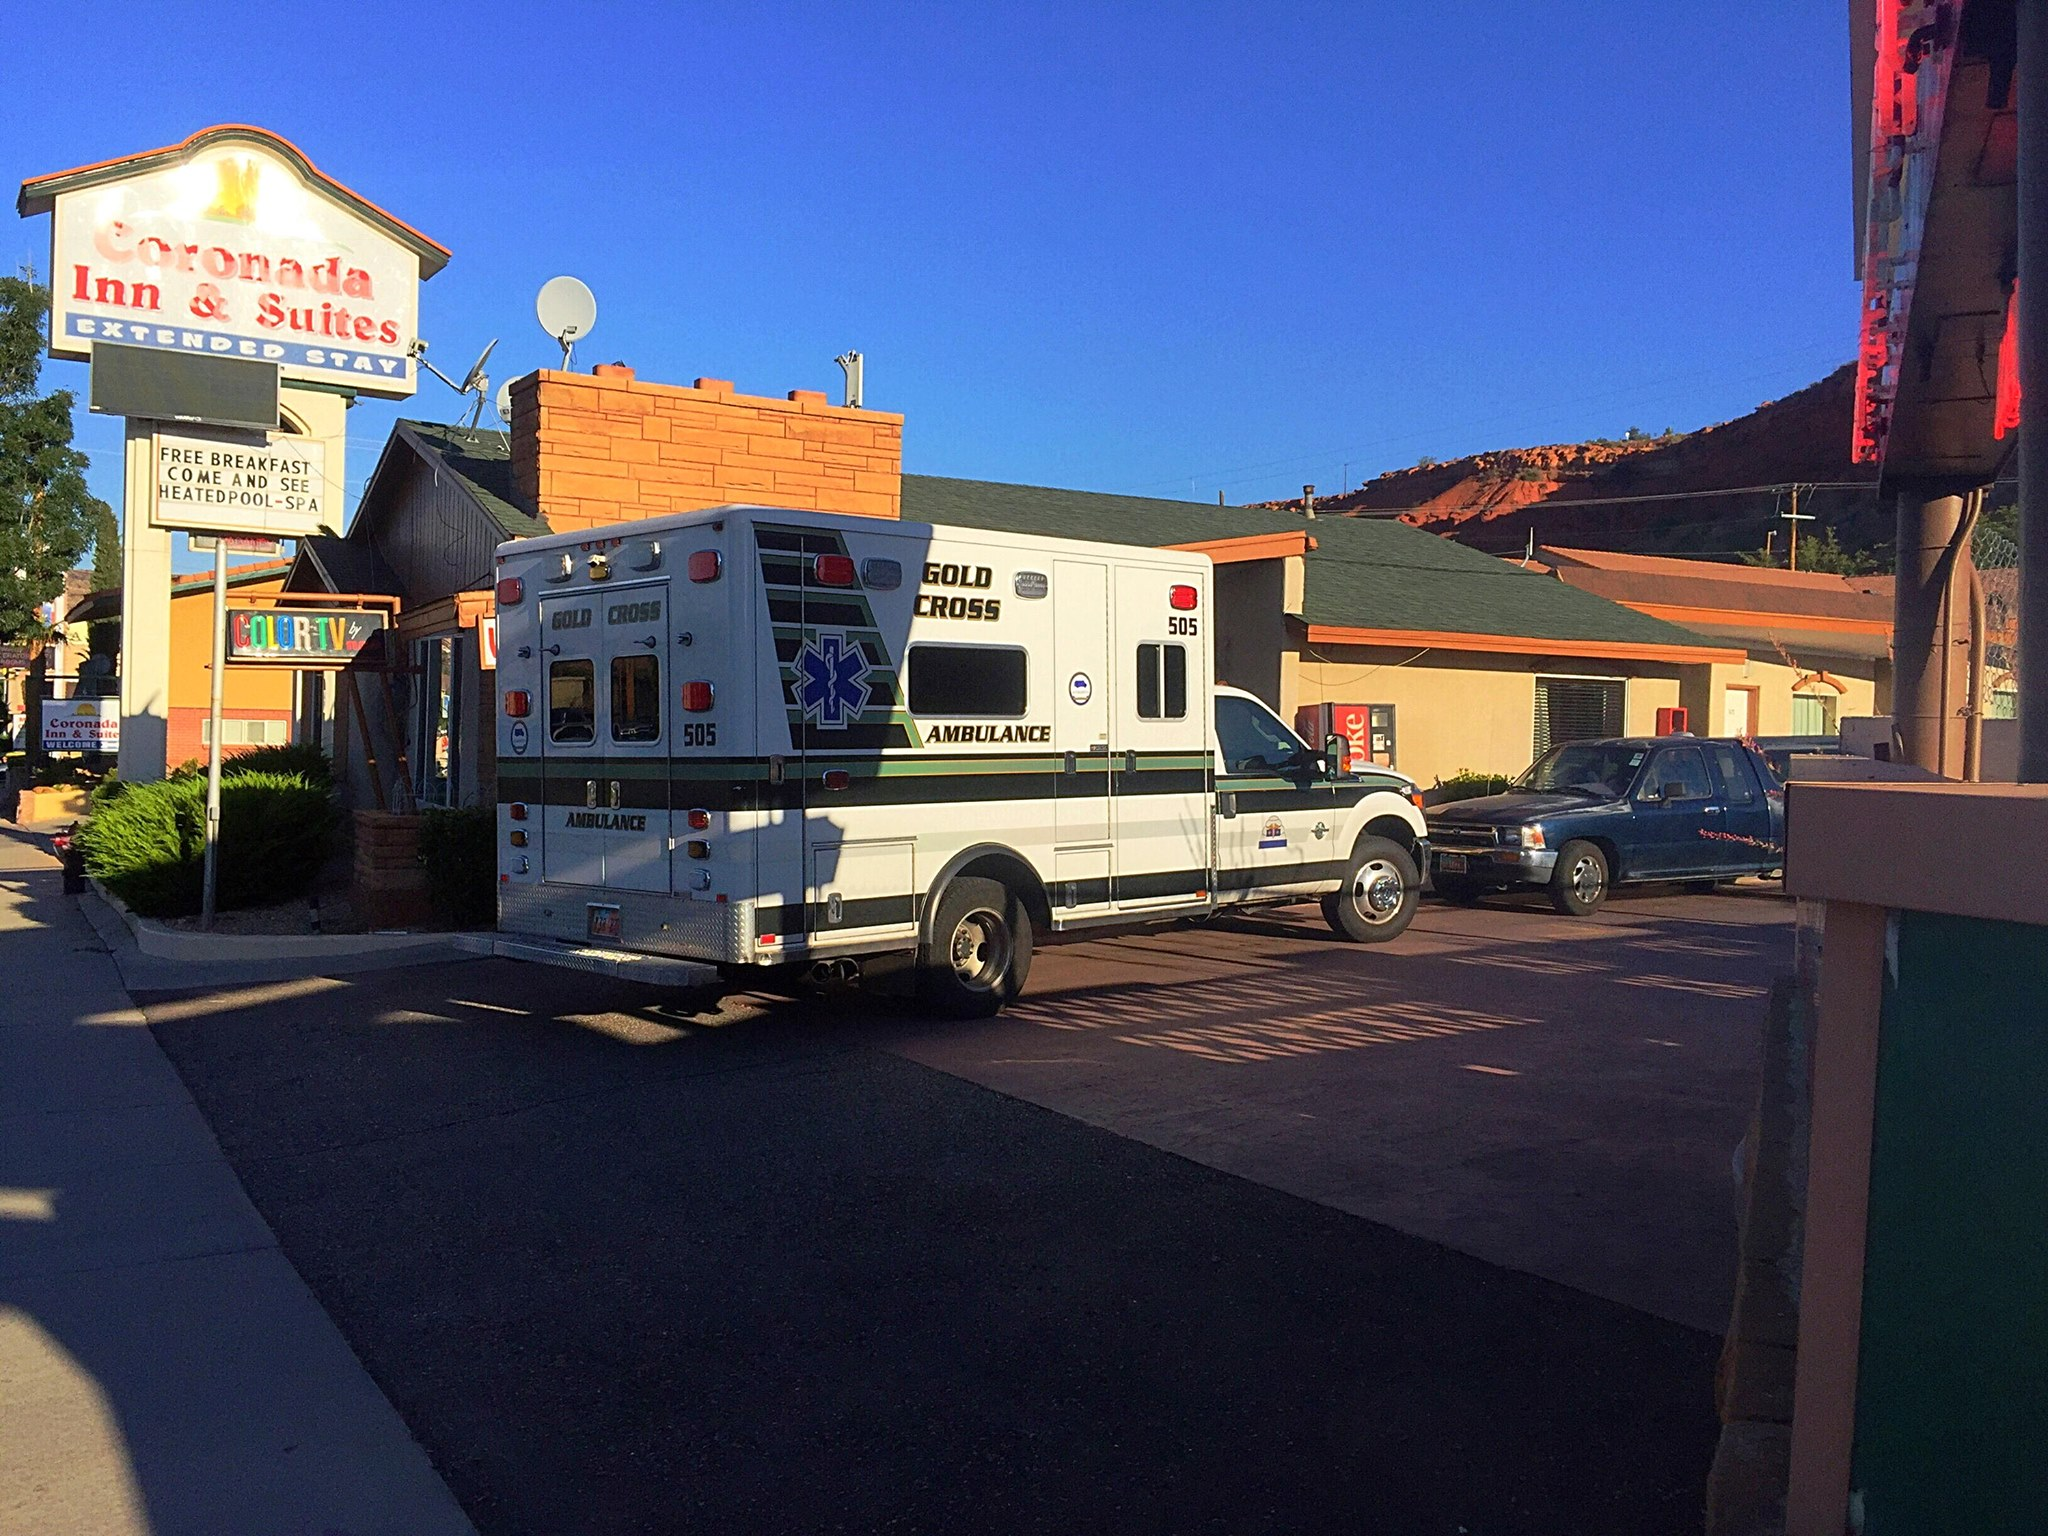 A 7-year-old boy with autism was discovered at the bottom of the Sands Motel swimming pool, 581 E. St. George Blvd., after he had been reported missing from a room at a nearby motel, St. George, Utah, Aug. 8, 2016 | Photo by Kimberly Scott, St. George News